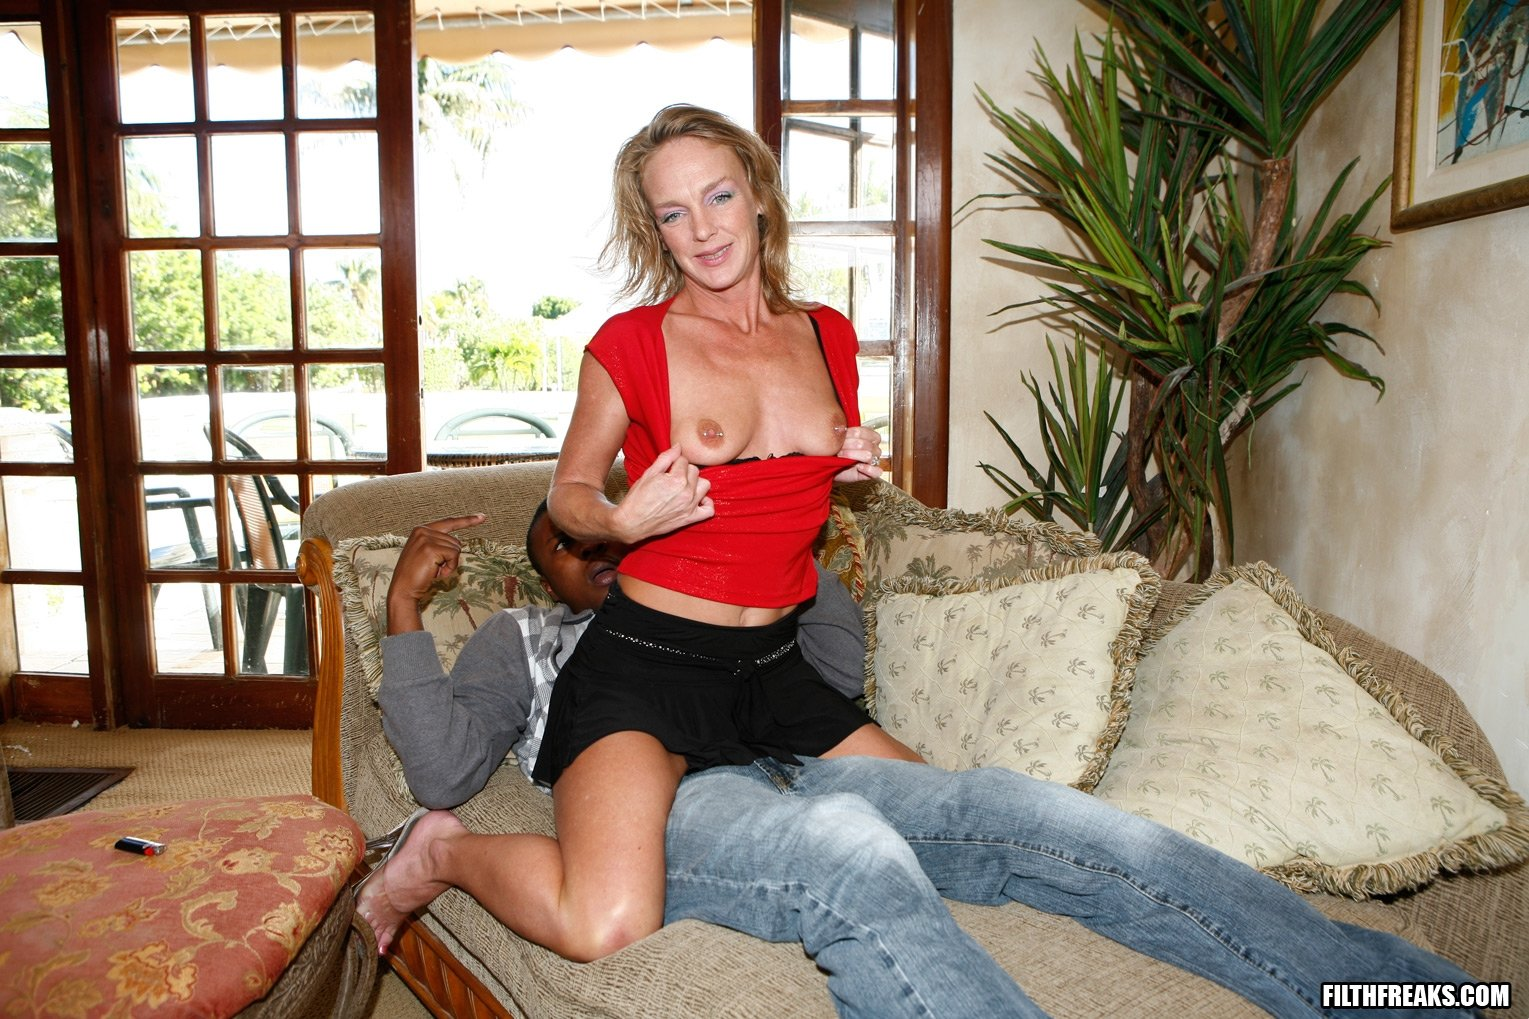 Free porn pics of horney housewives